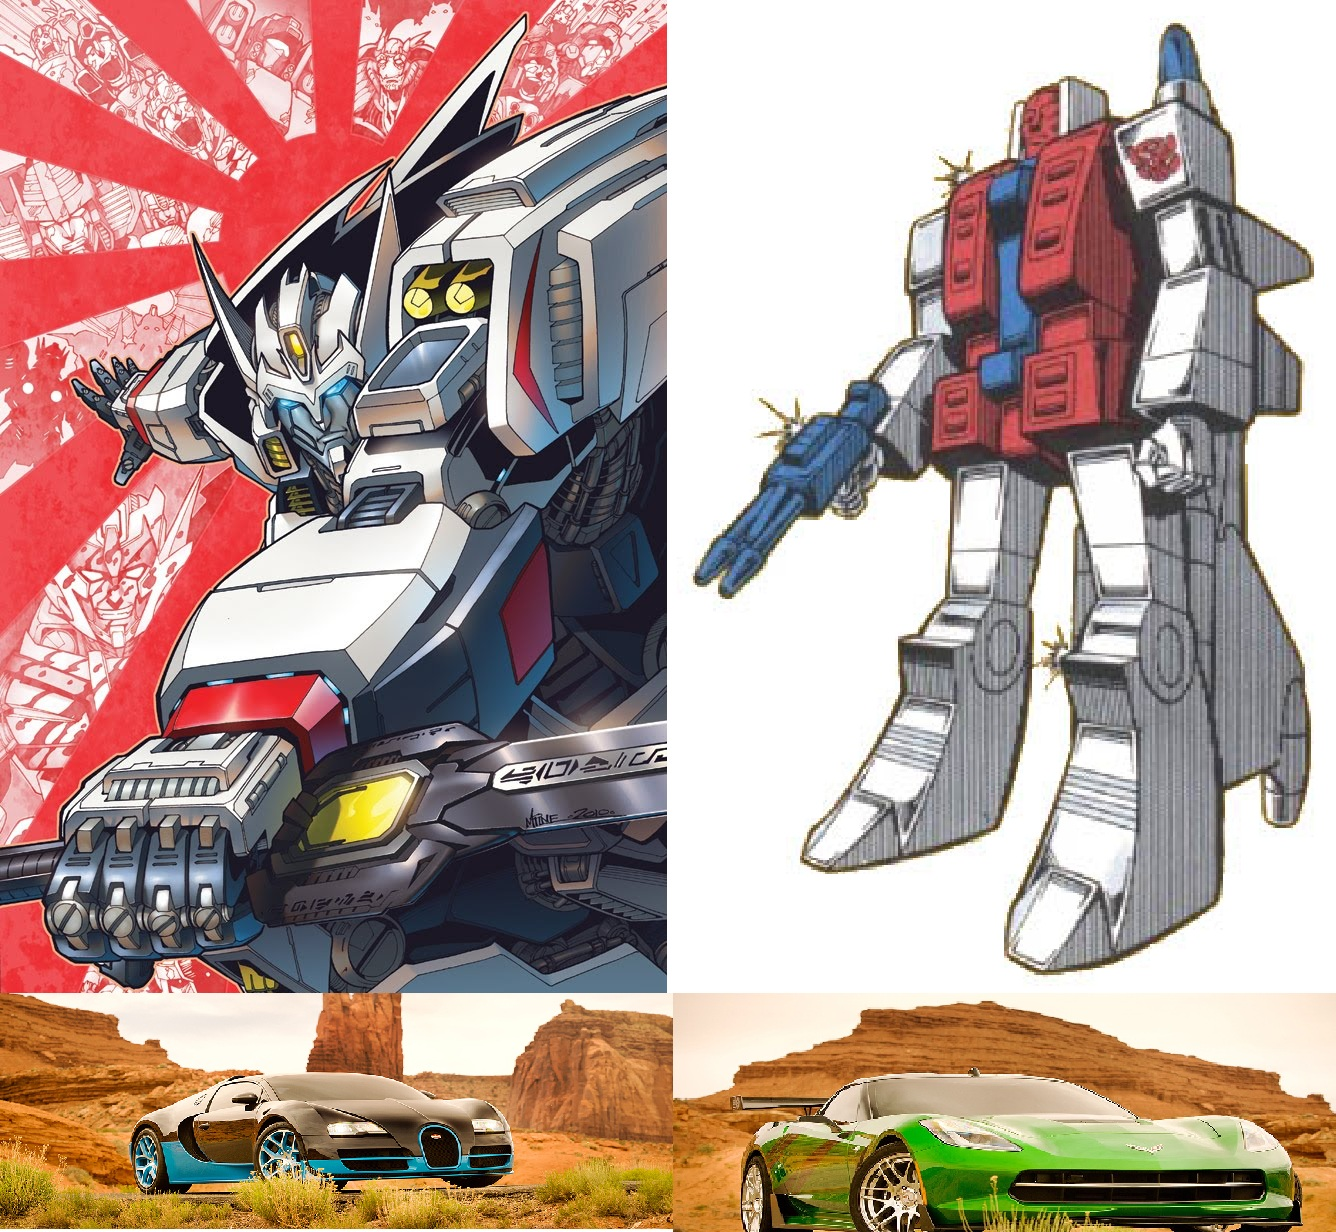 Robot Names Of The Two New Transformers 4 Autobots Revealed